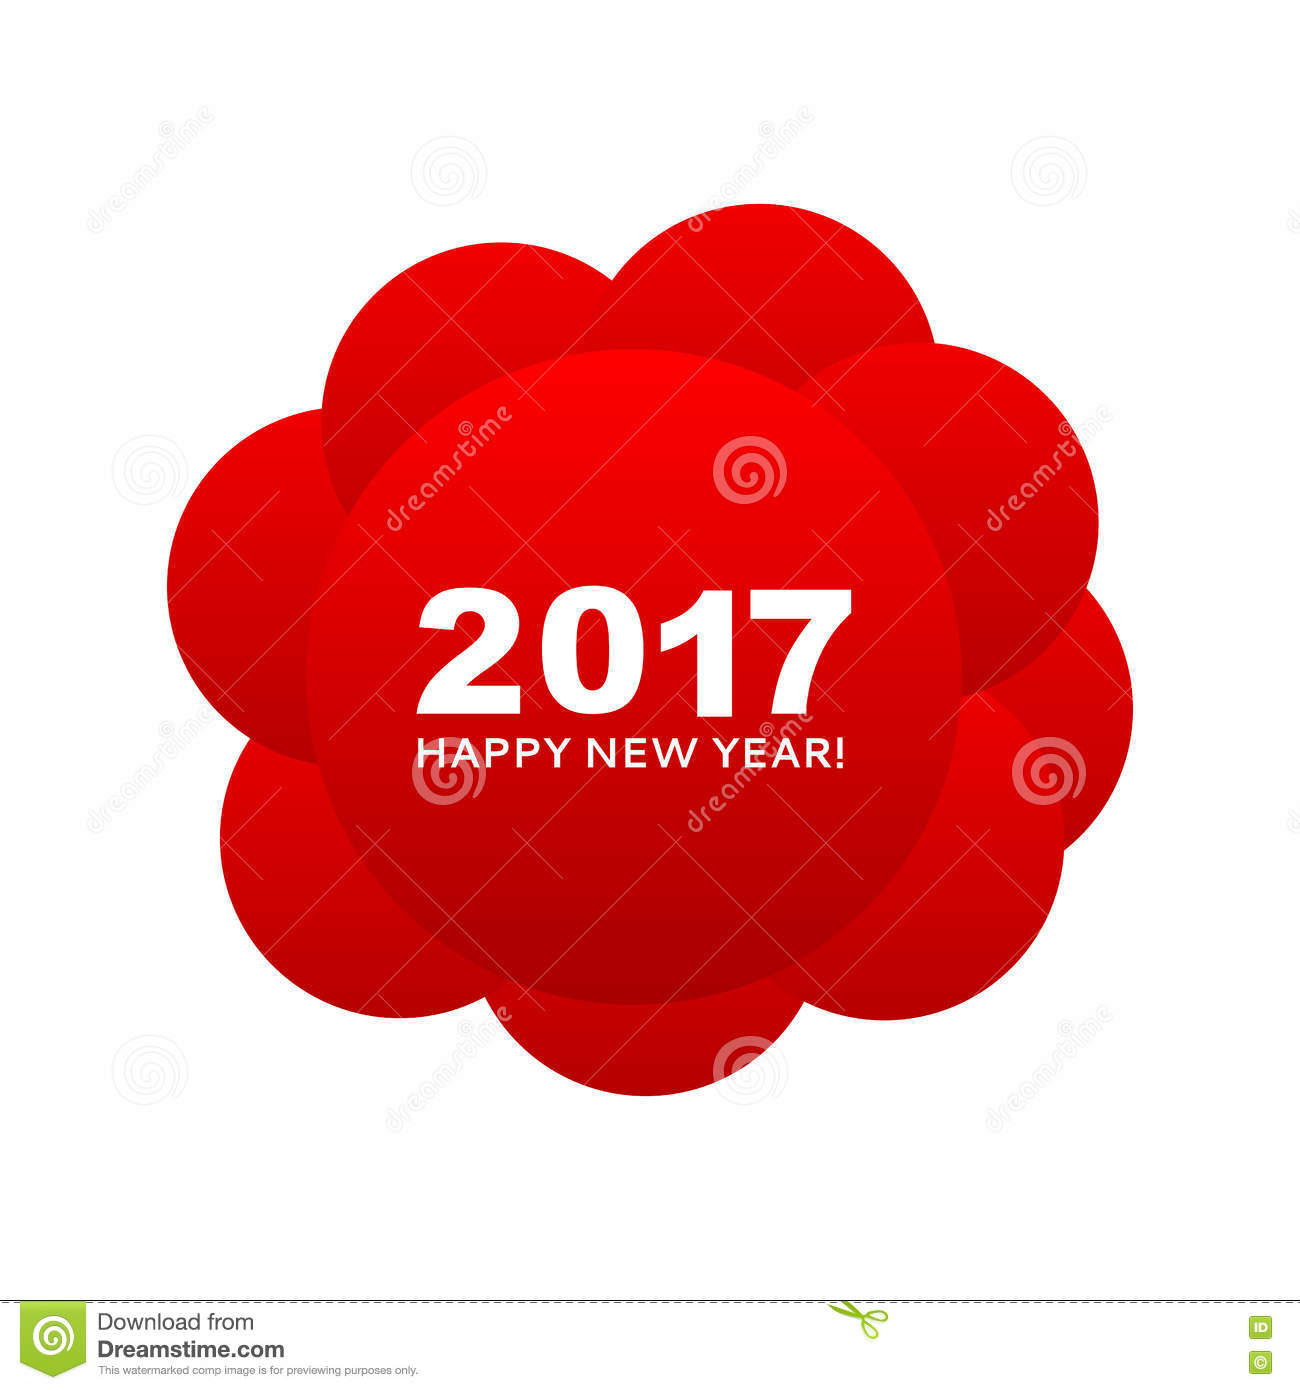 happy new year 2017 congratulation on the red circles make up a